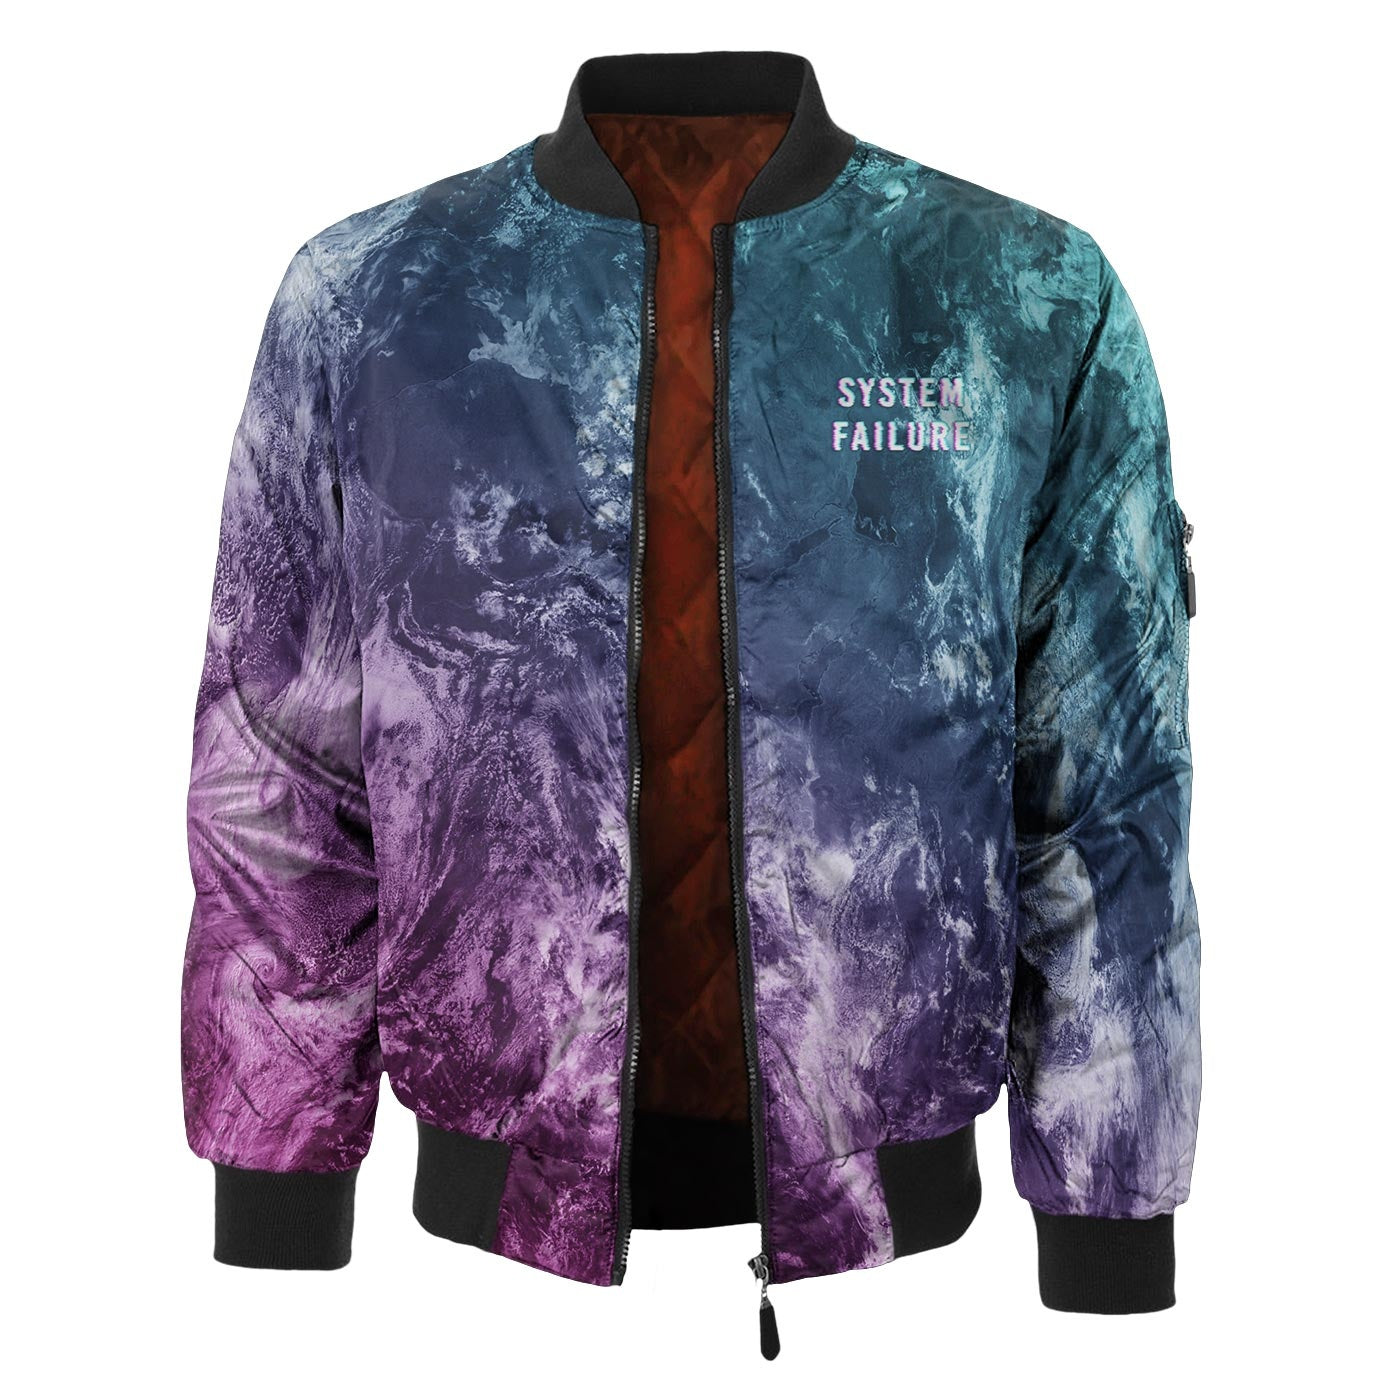 System Failure Bomber Jacket